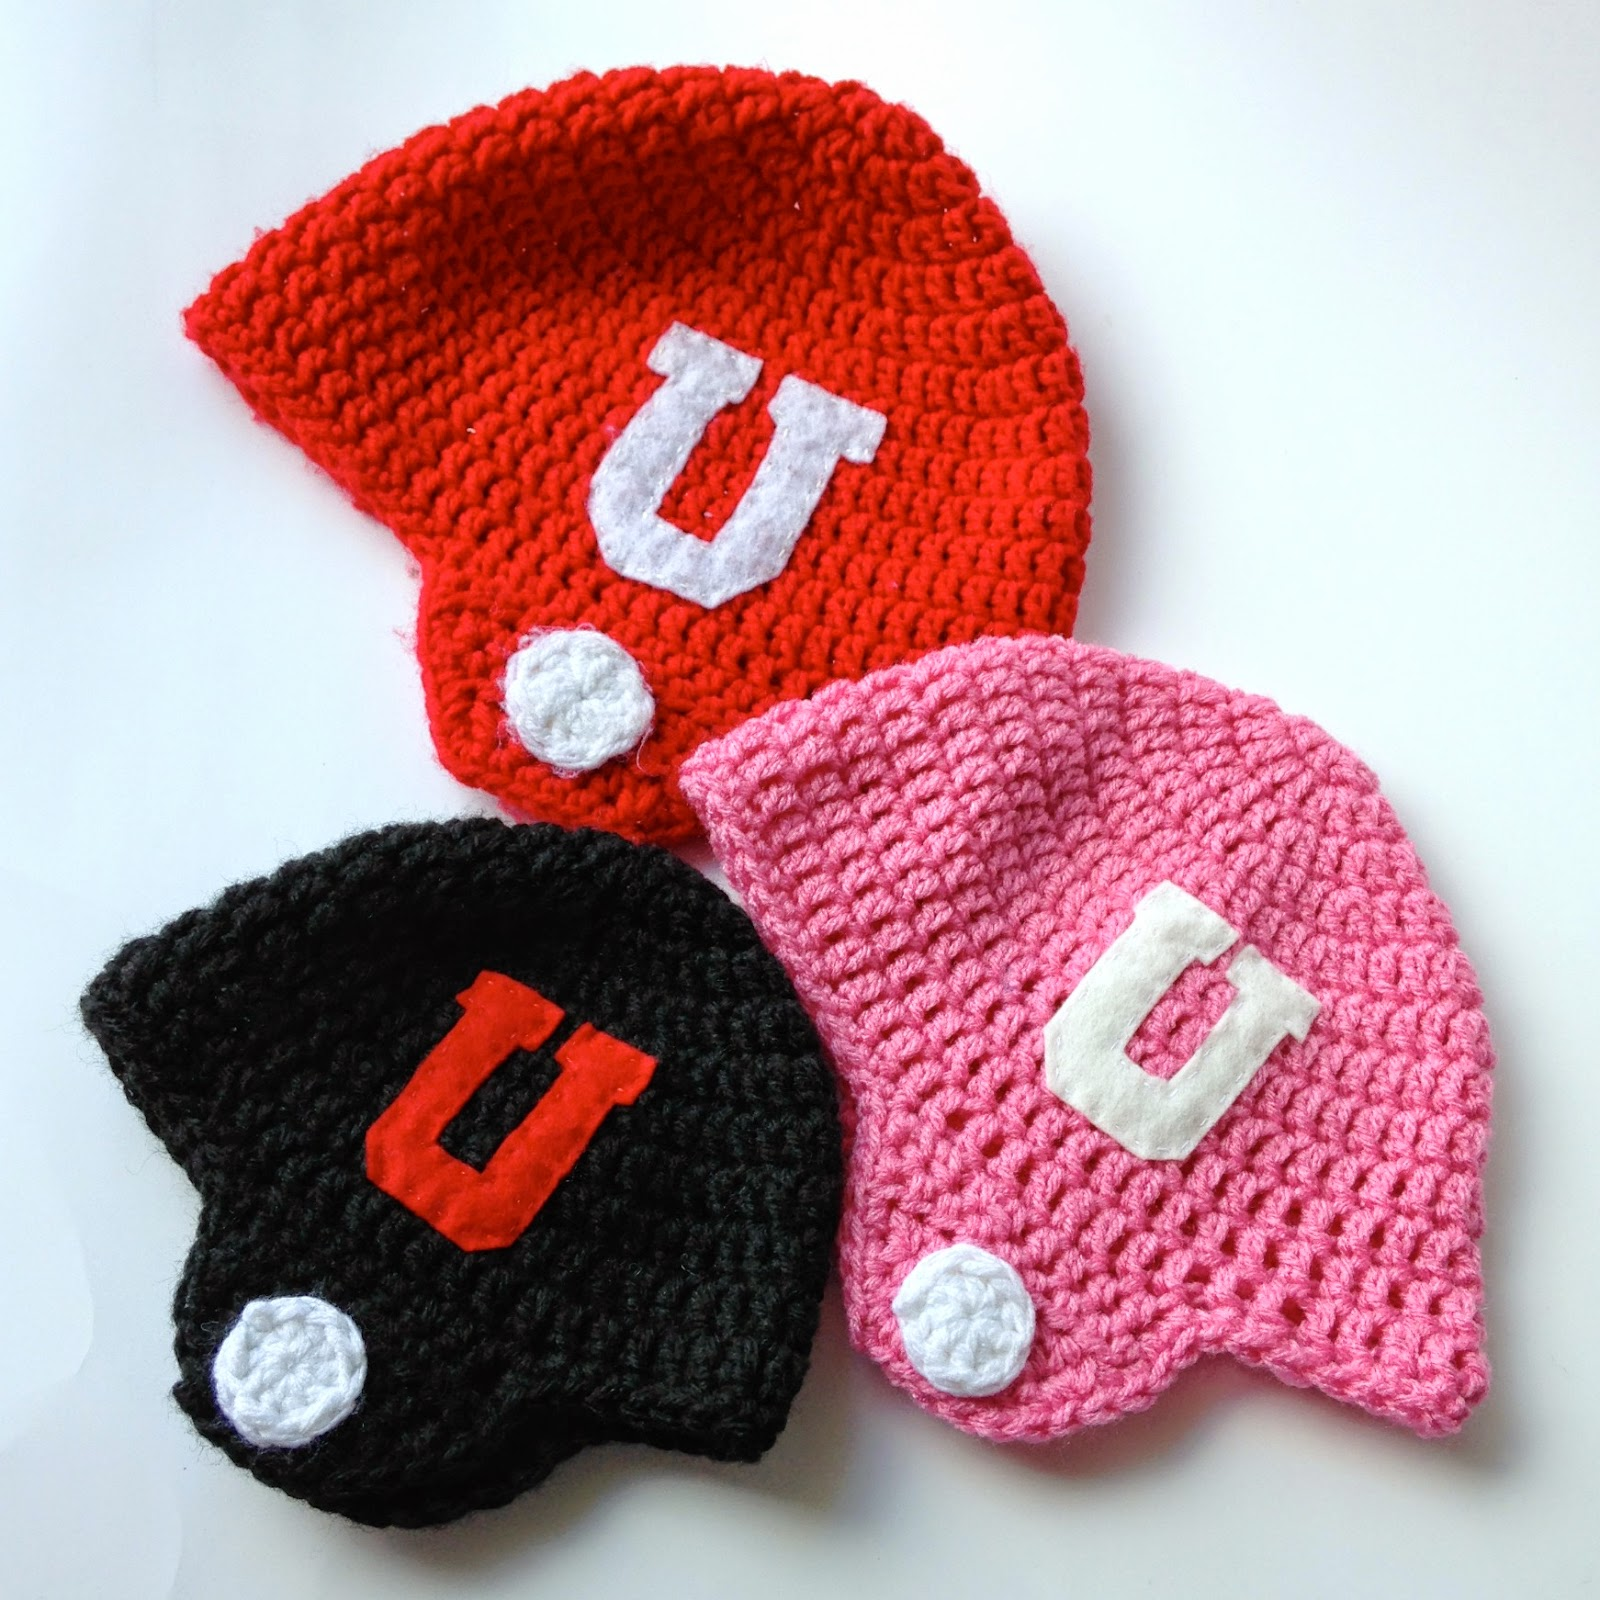 5 little monsters crocheted football helmet hats free pattern crocheted football helmet hats free pattern a couple of years ago i made a hat for each of my kids for christmas i found lots of cute ideas for babies bankloansurffo Choice Image